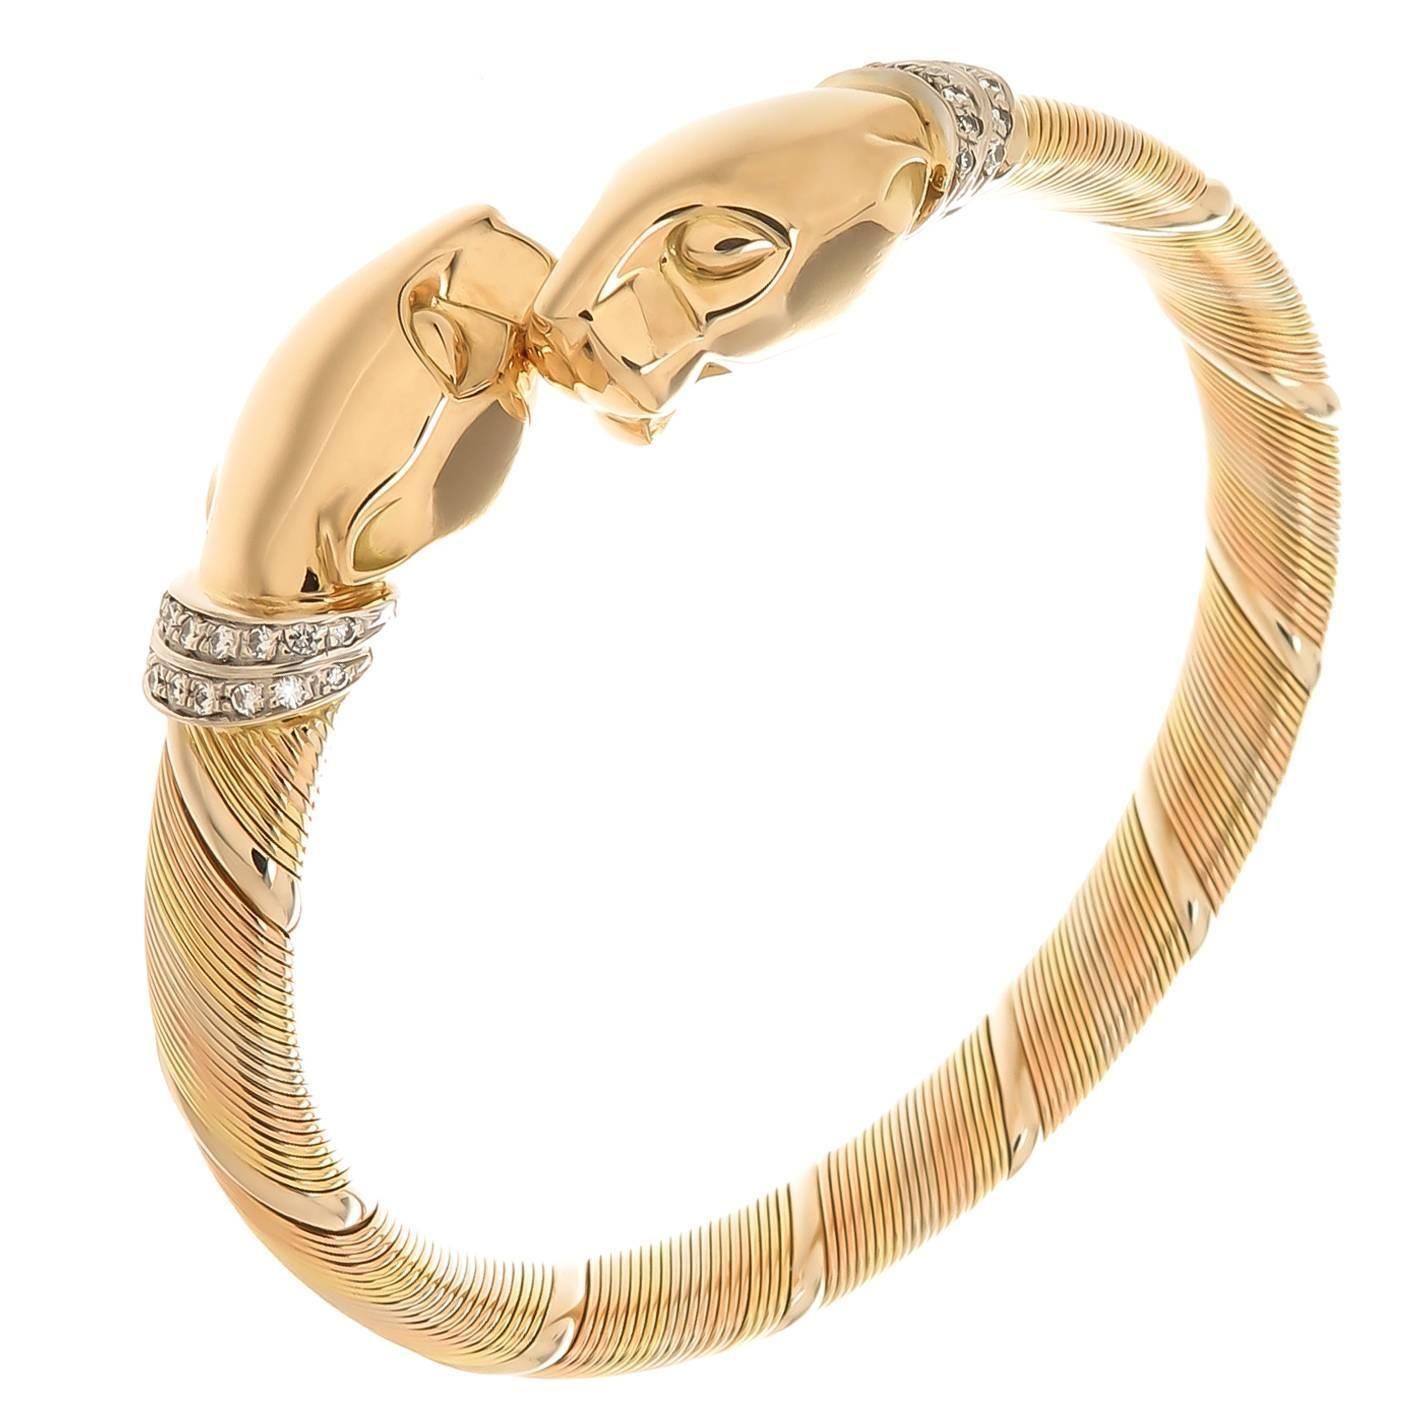 elements panther bracelet row ladies from image gold link